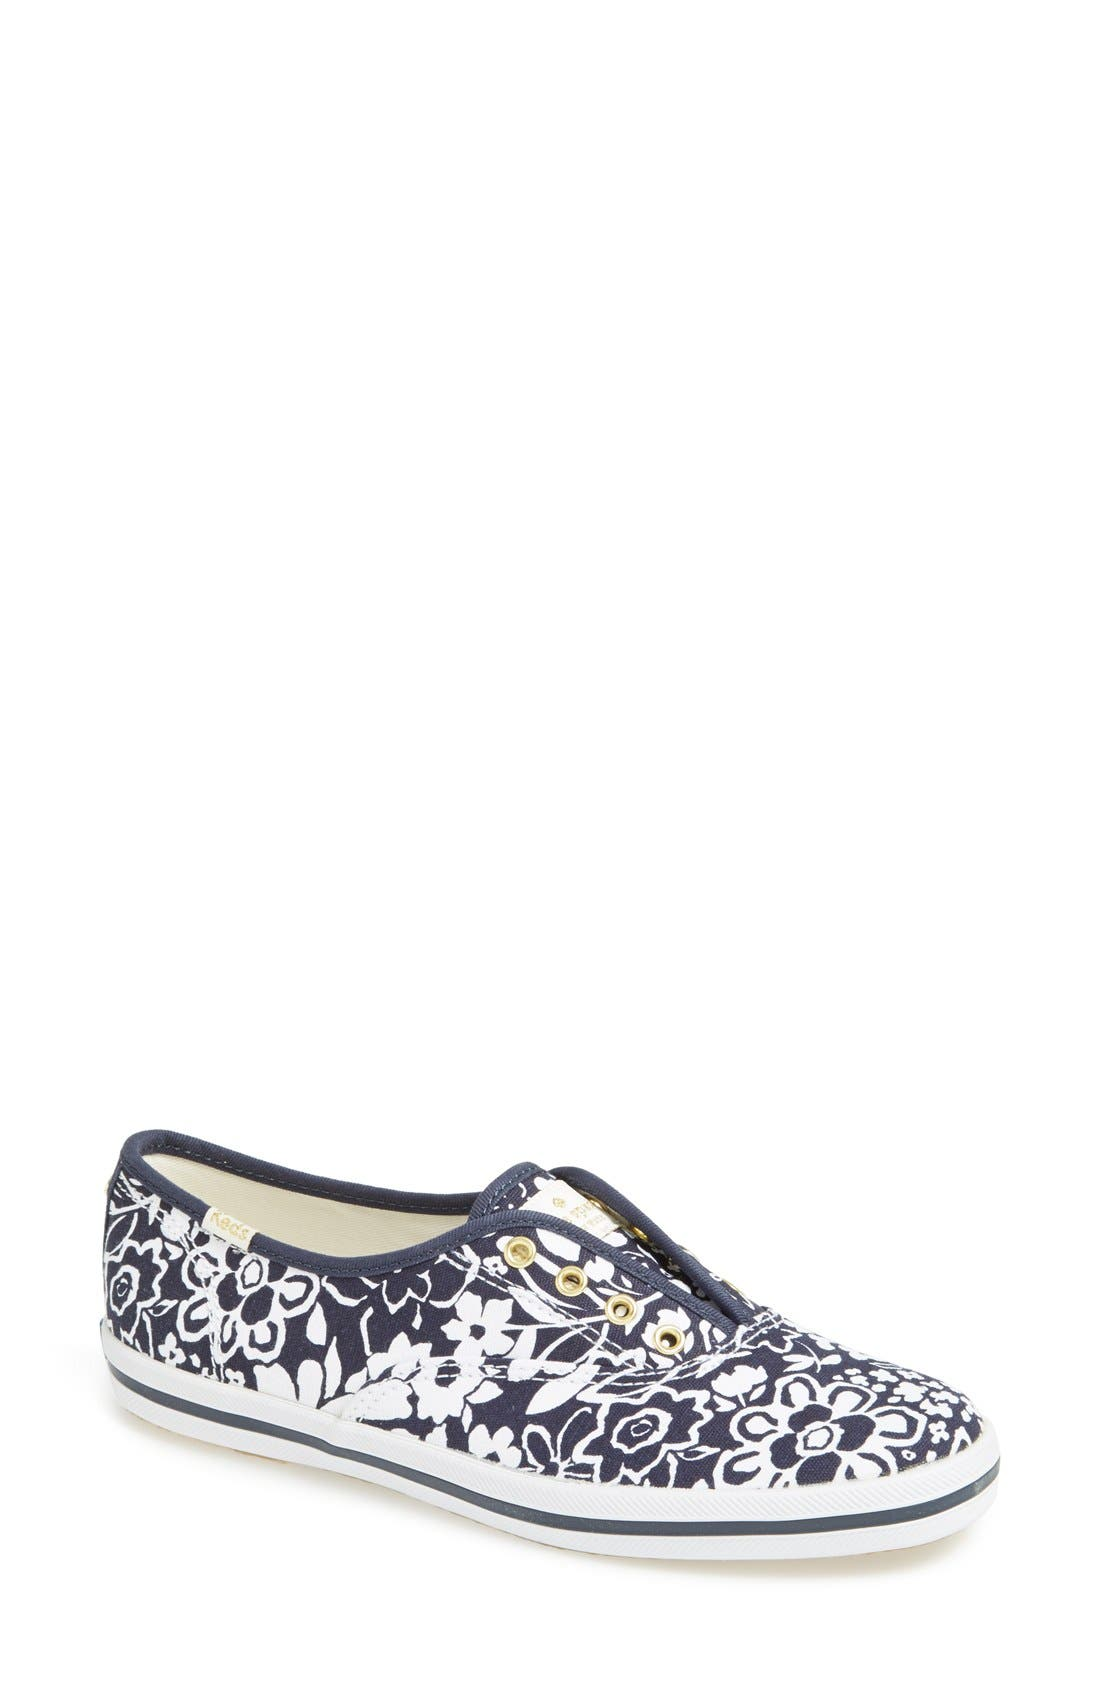 Alternate Image 1 Selected - Keds® for kate spade new york 'champ' print canvas sneaker